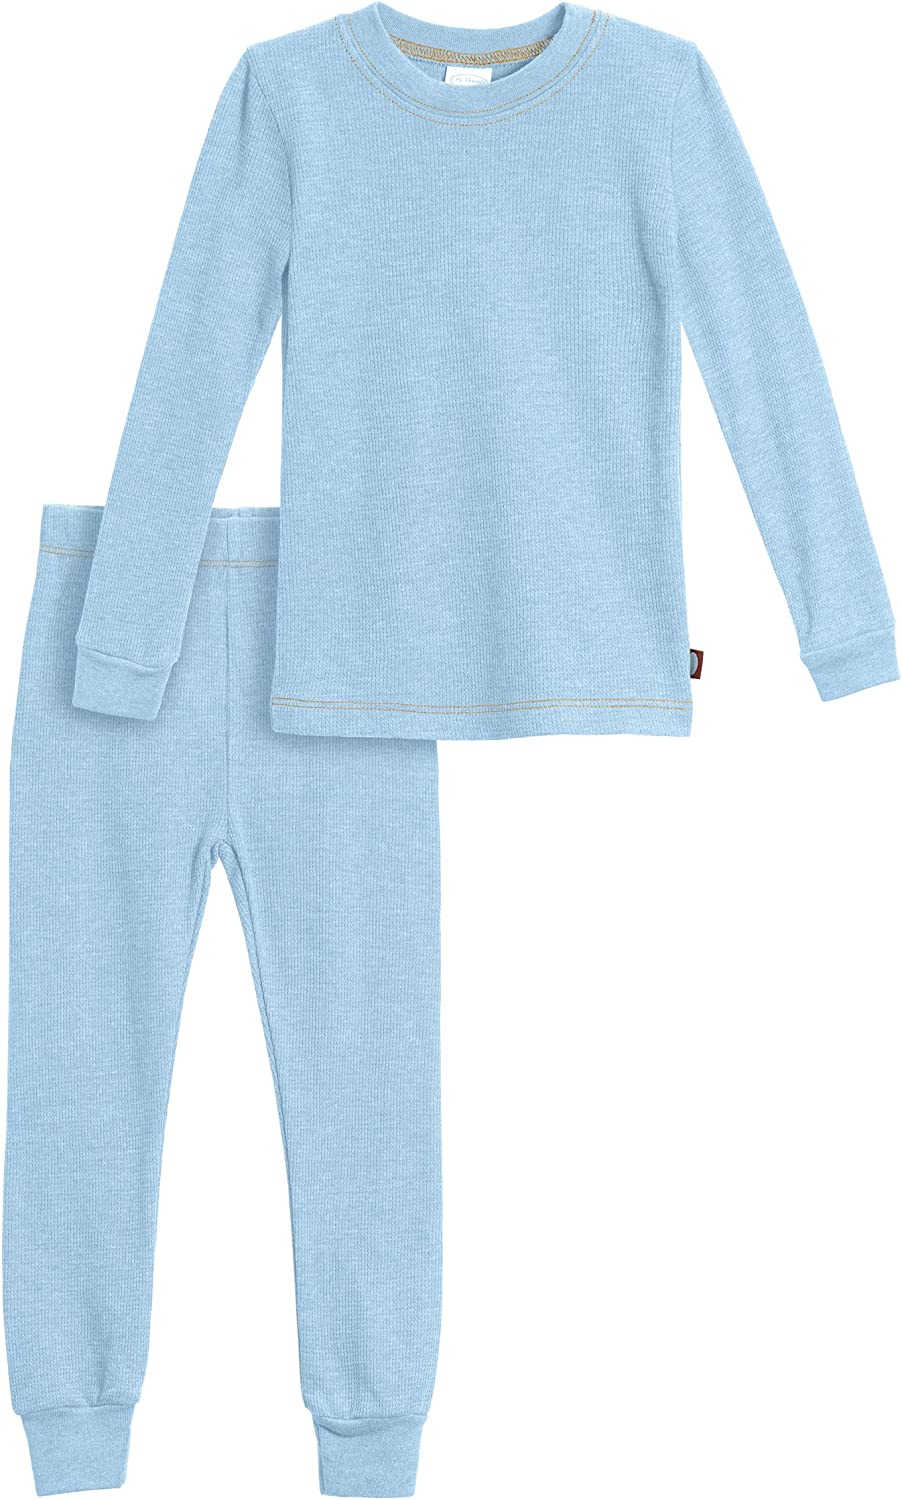 City Threads Little Boys Thermal Underwear Set Perfect for Sensitive Skin SPD Sensory Friendly Base Layer Thermal Wear Cotton Ski Clothing for Kids Comfortable Ultra Soft Bright Lt Blue 6